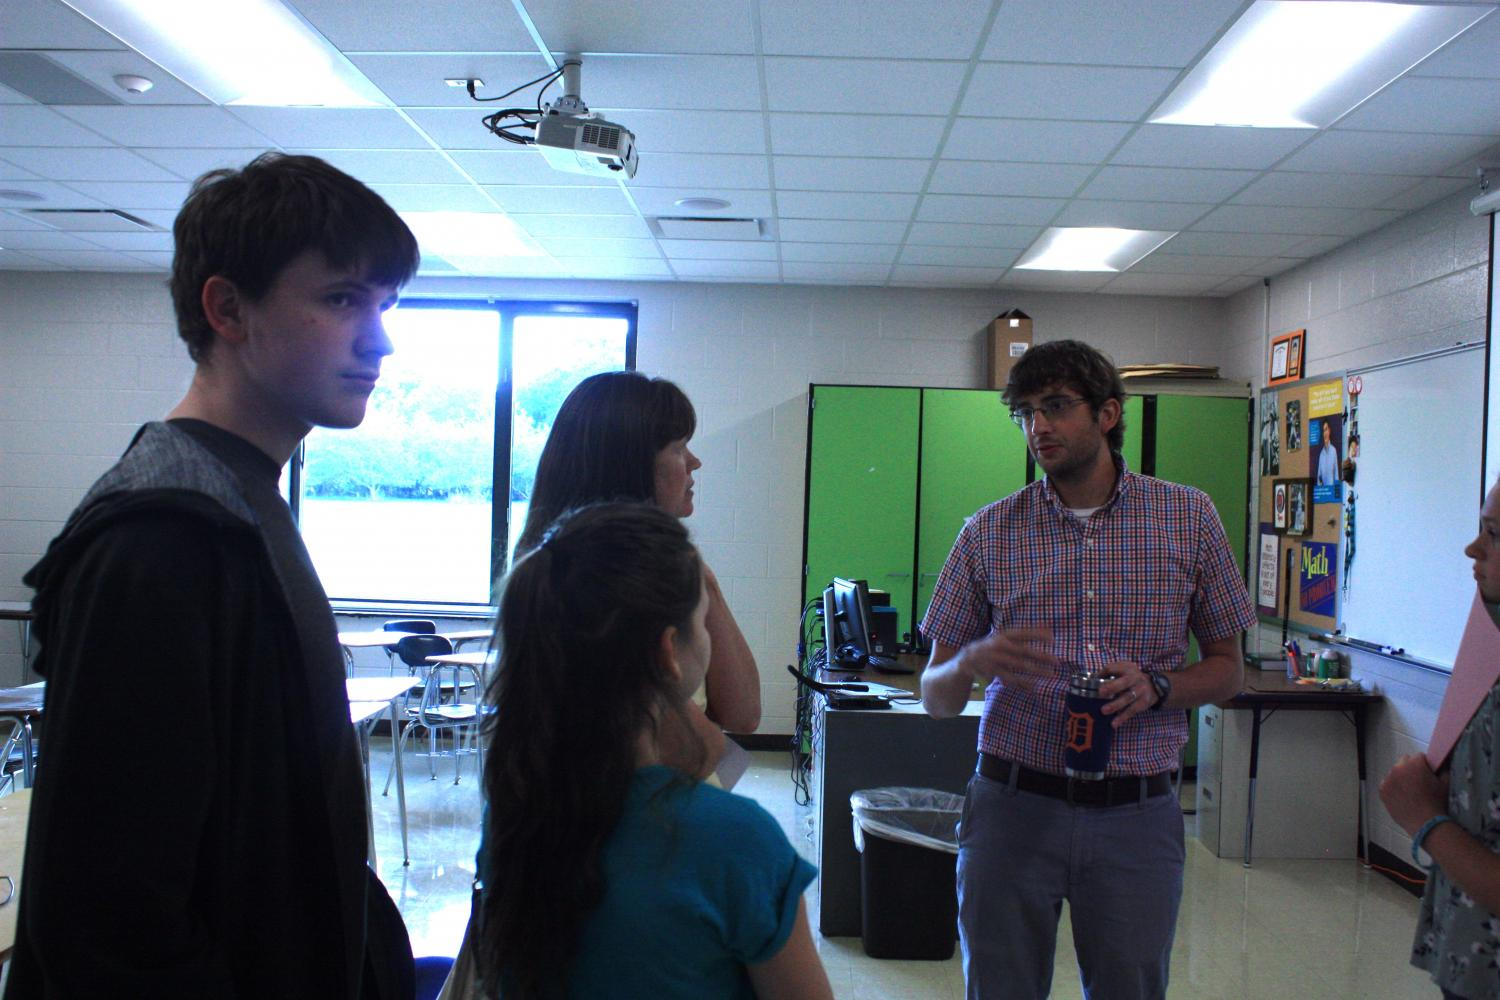 Math instructor, Mr. Rickli talking to students at open house.